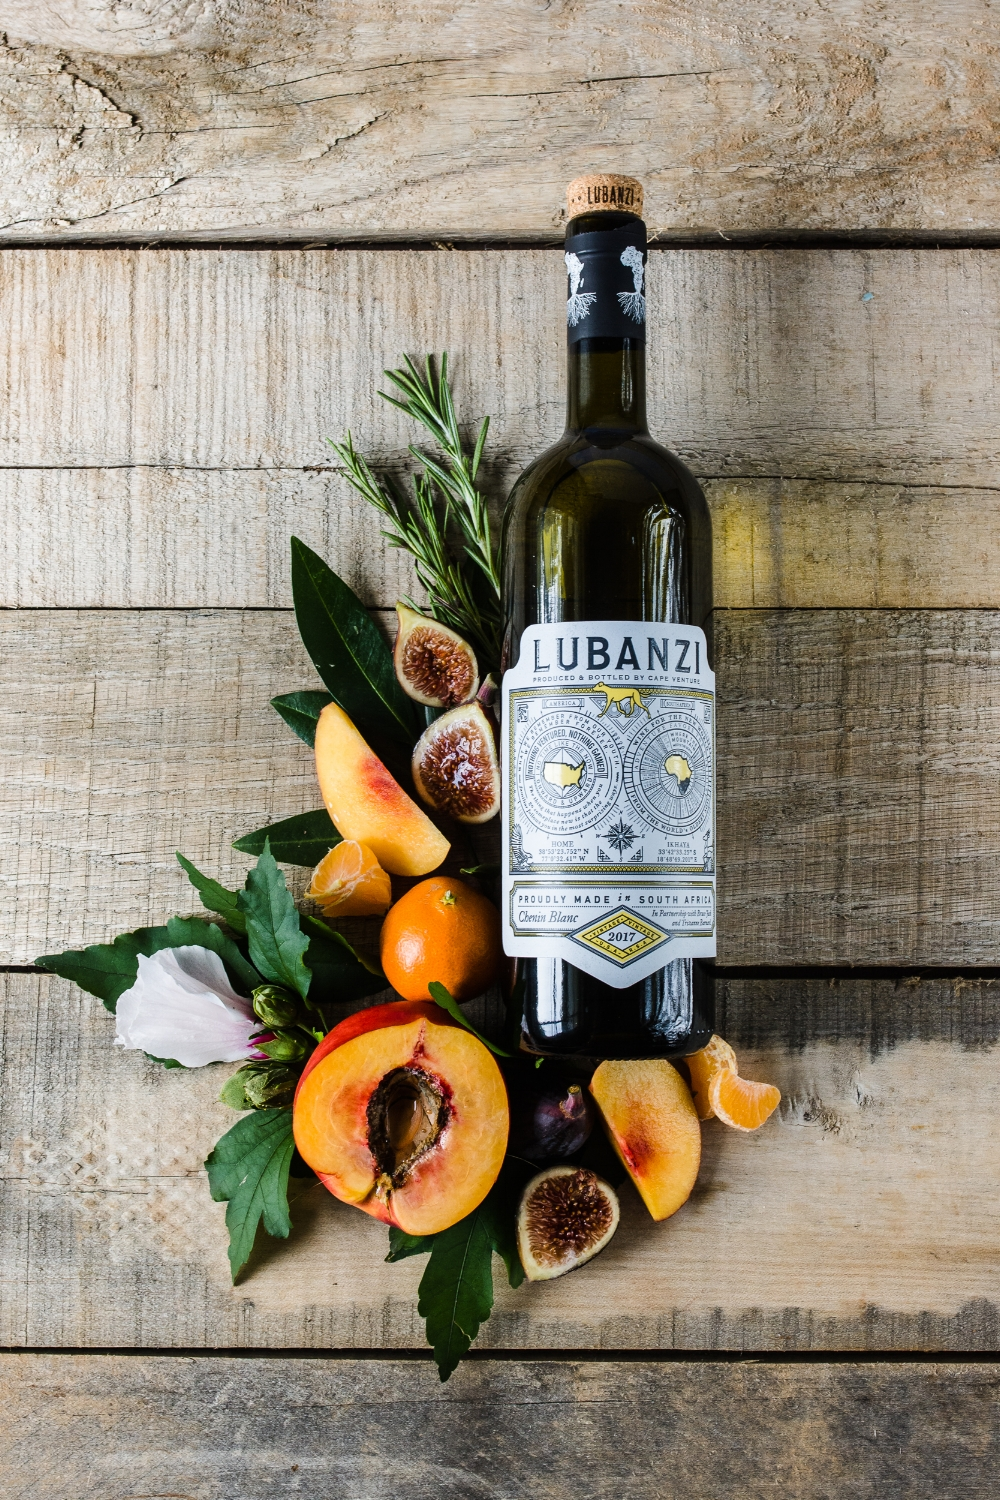 lubanzi wine flatlay product shot